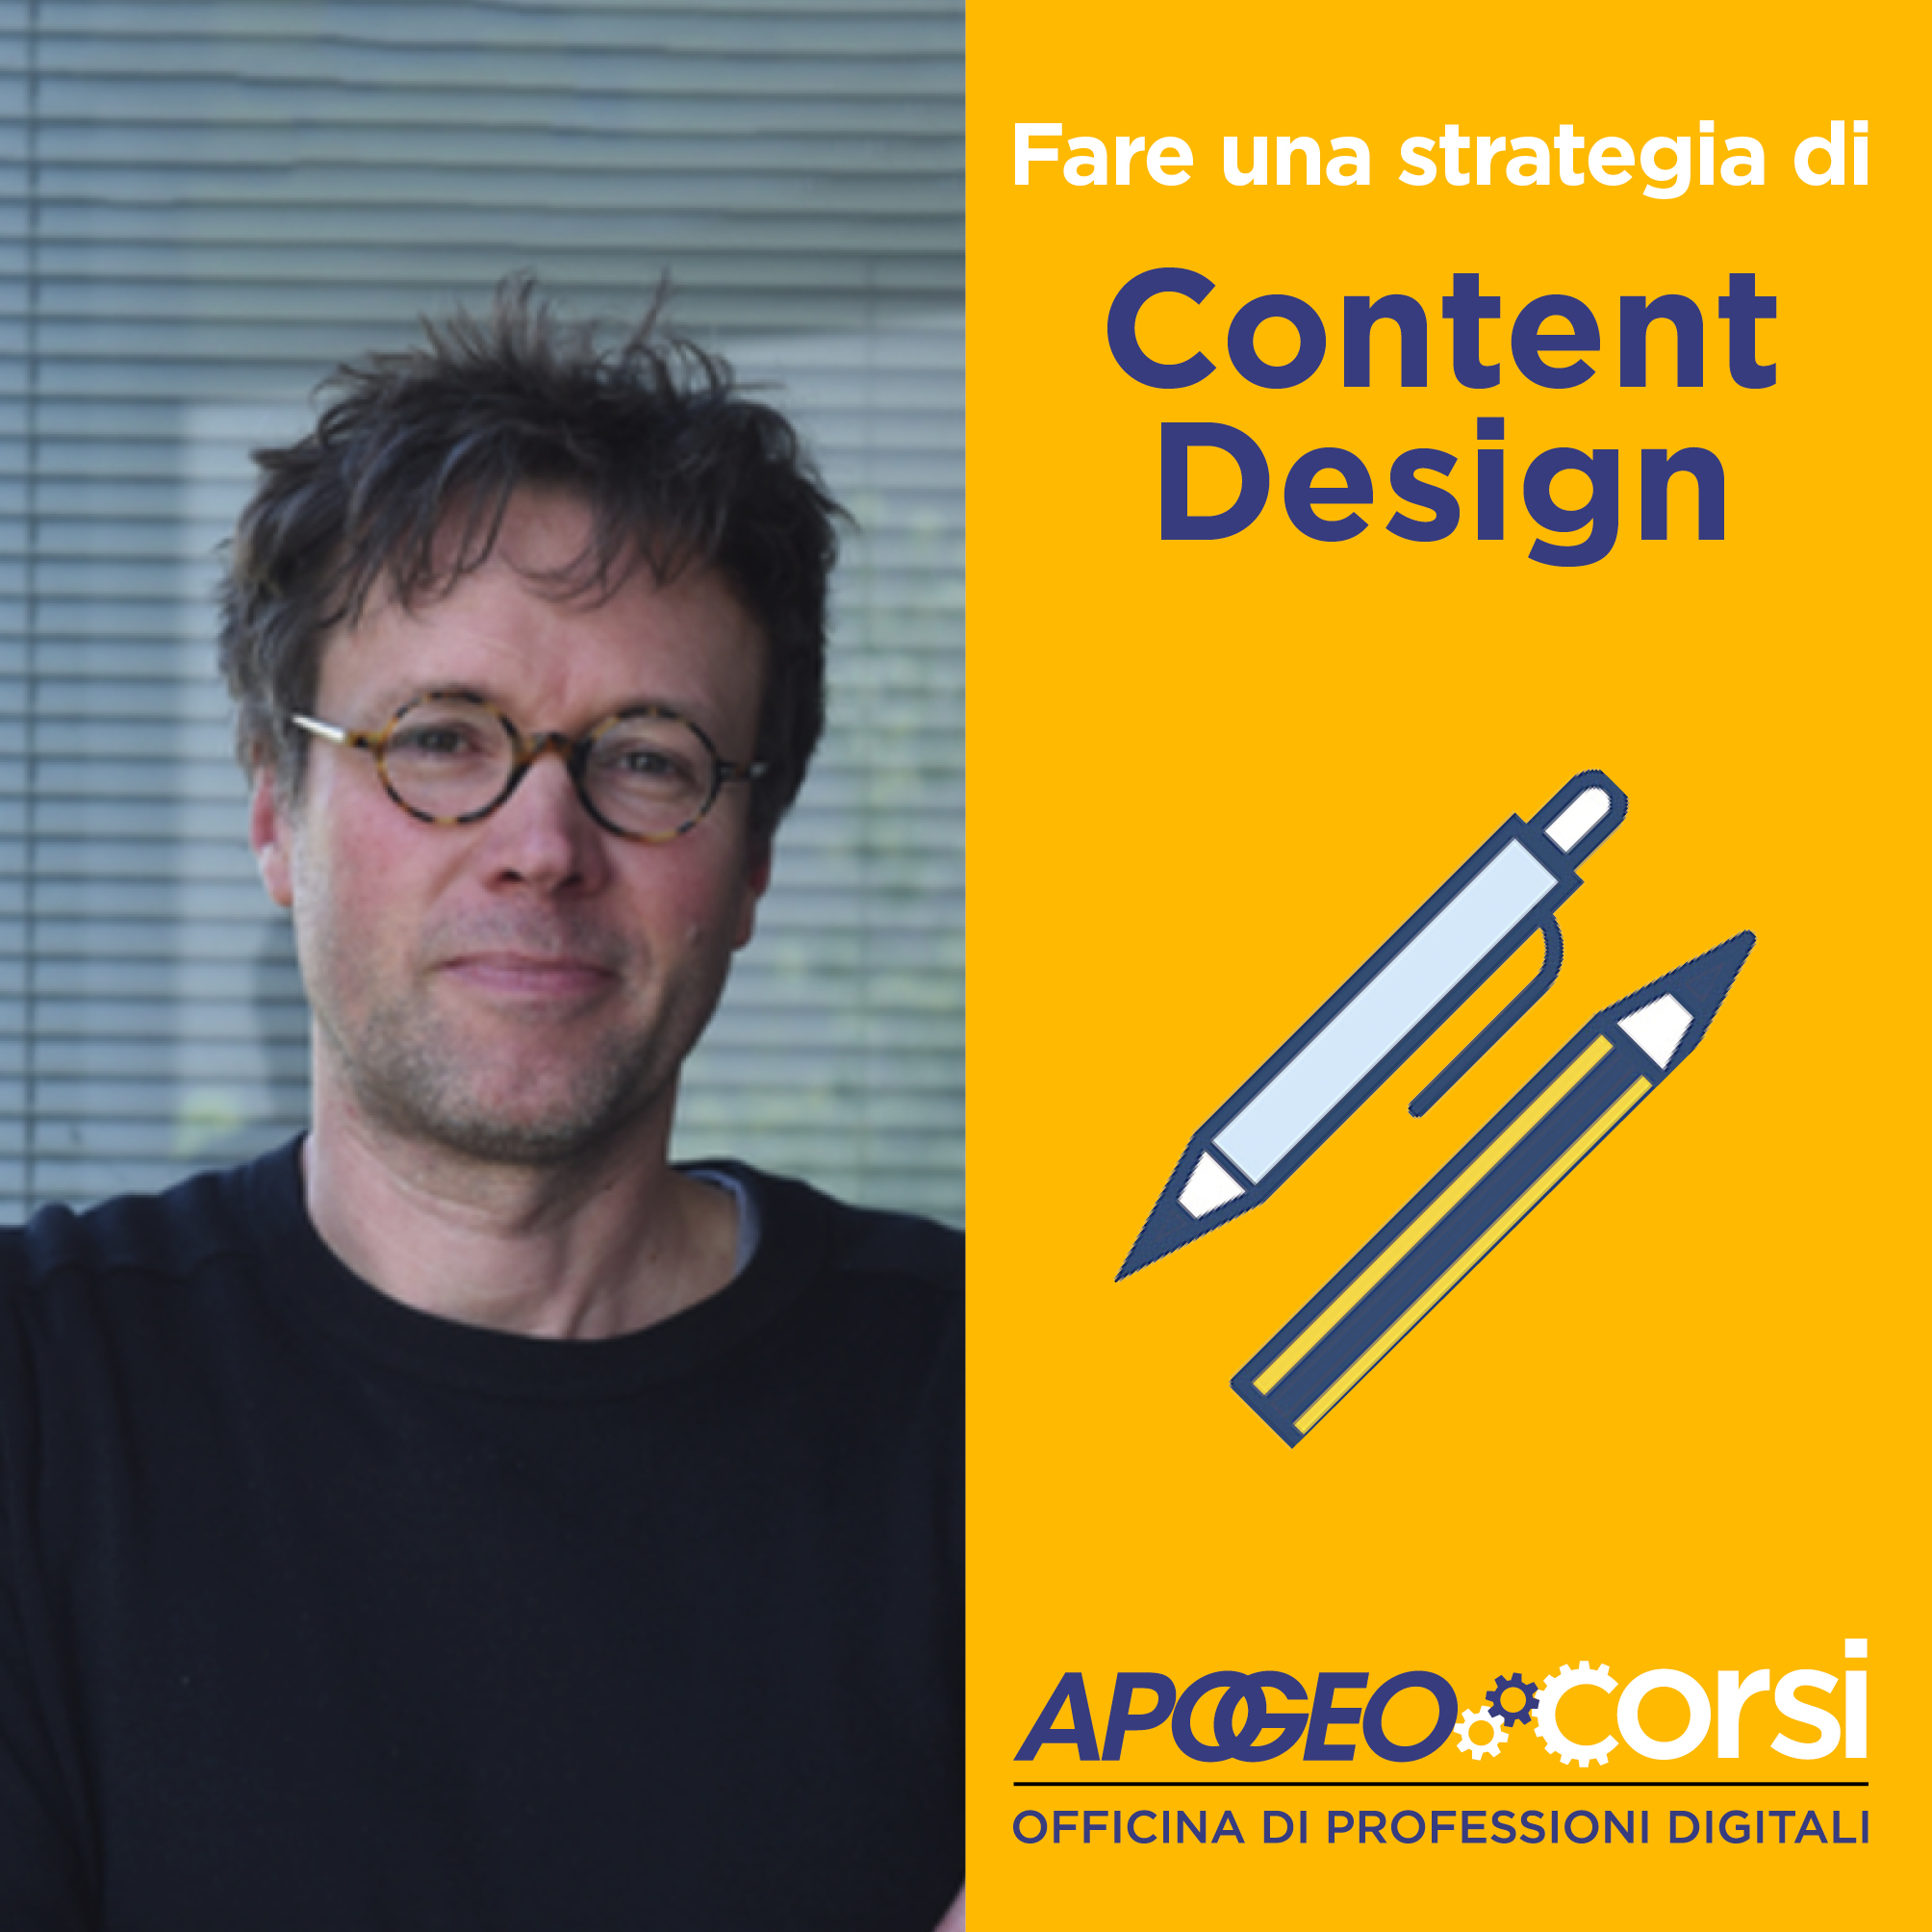 Fare_una_strategia_di_Content_Design-home